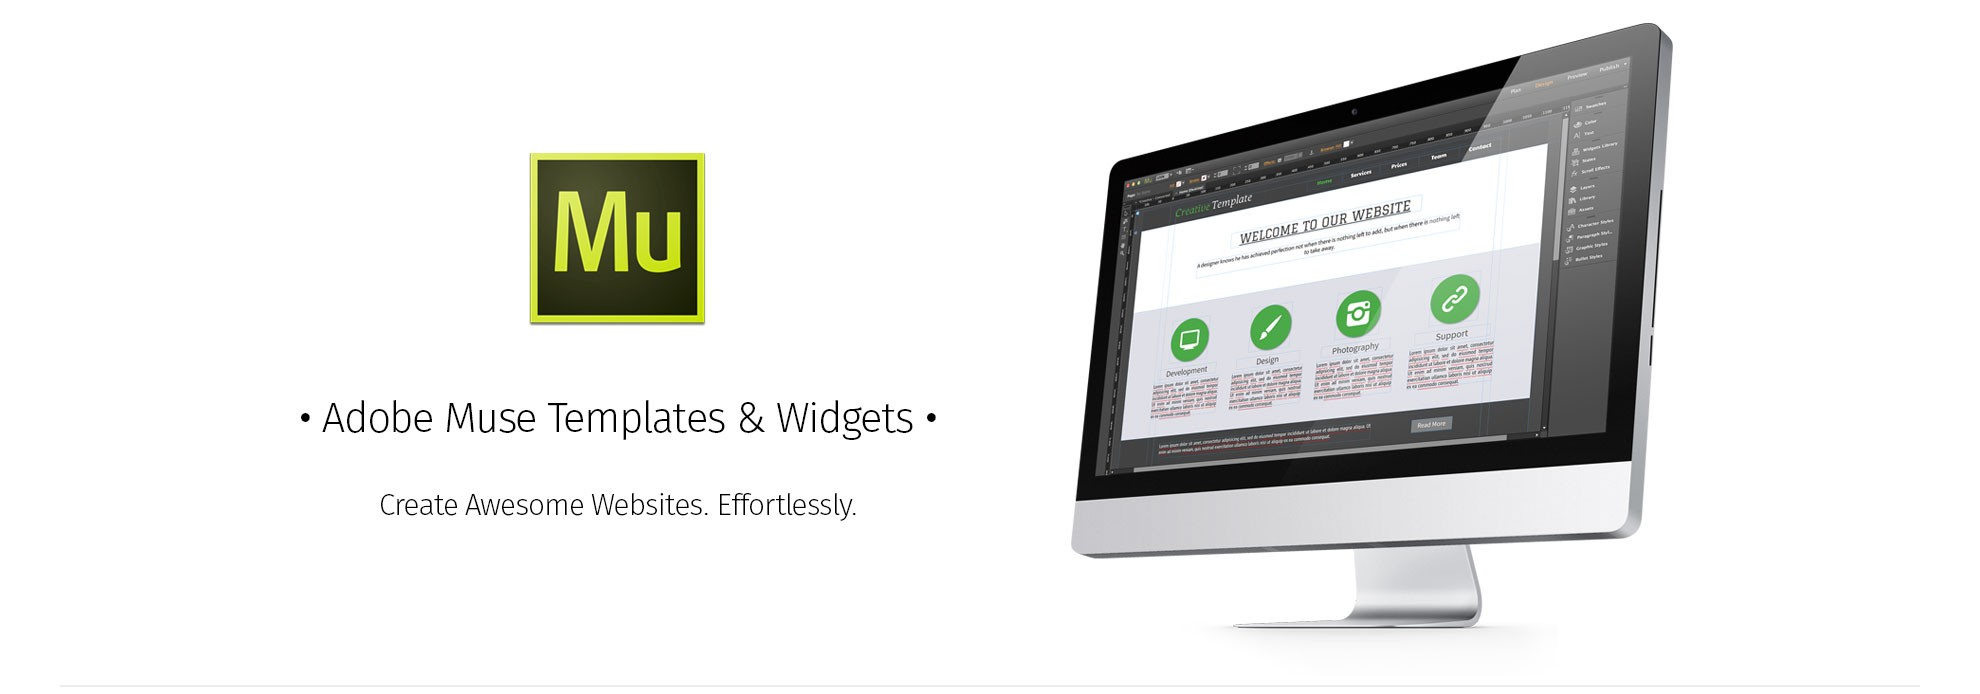 adobe muse templates and widgets